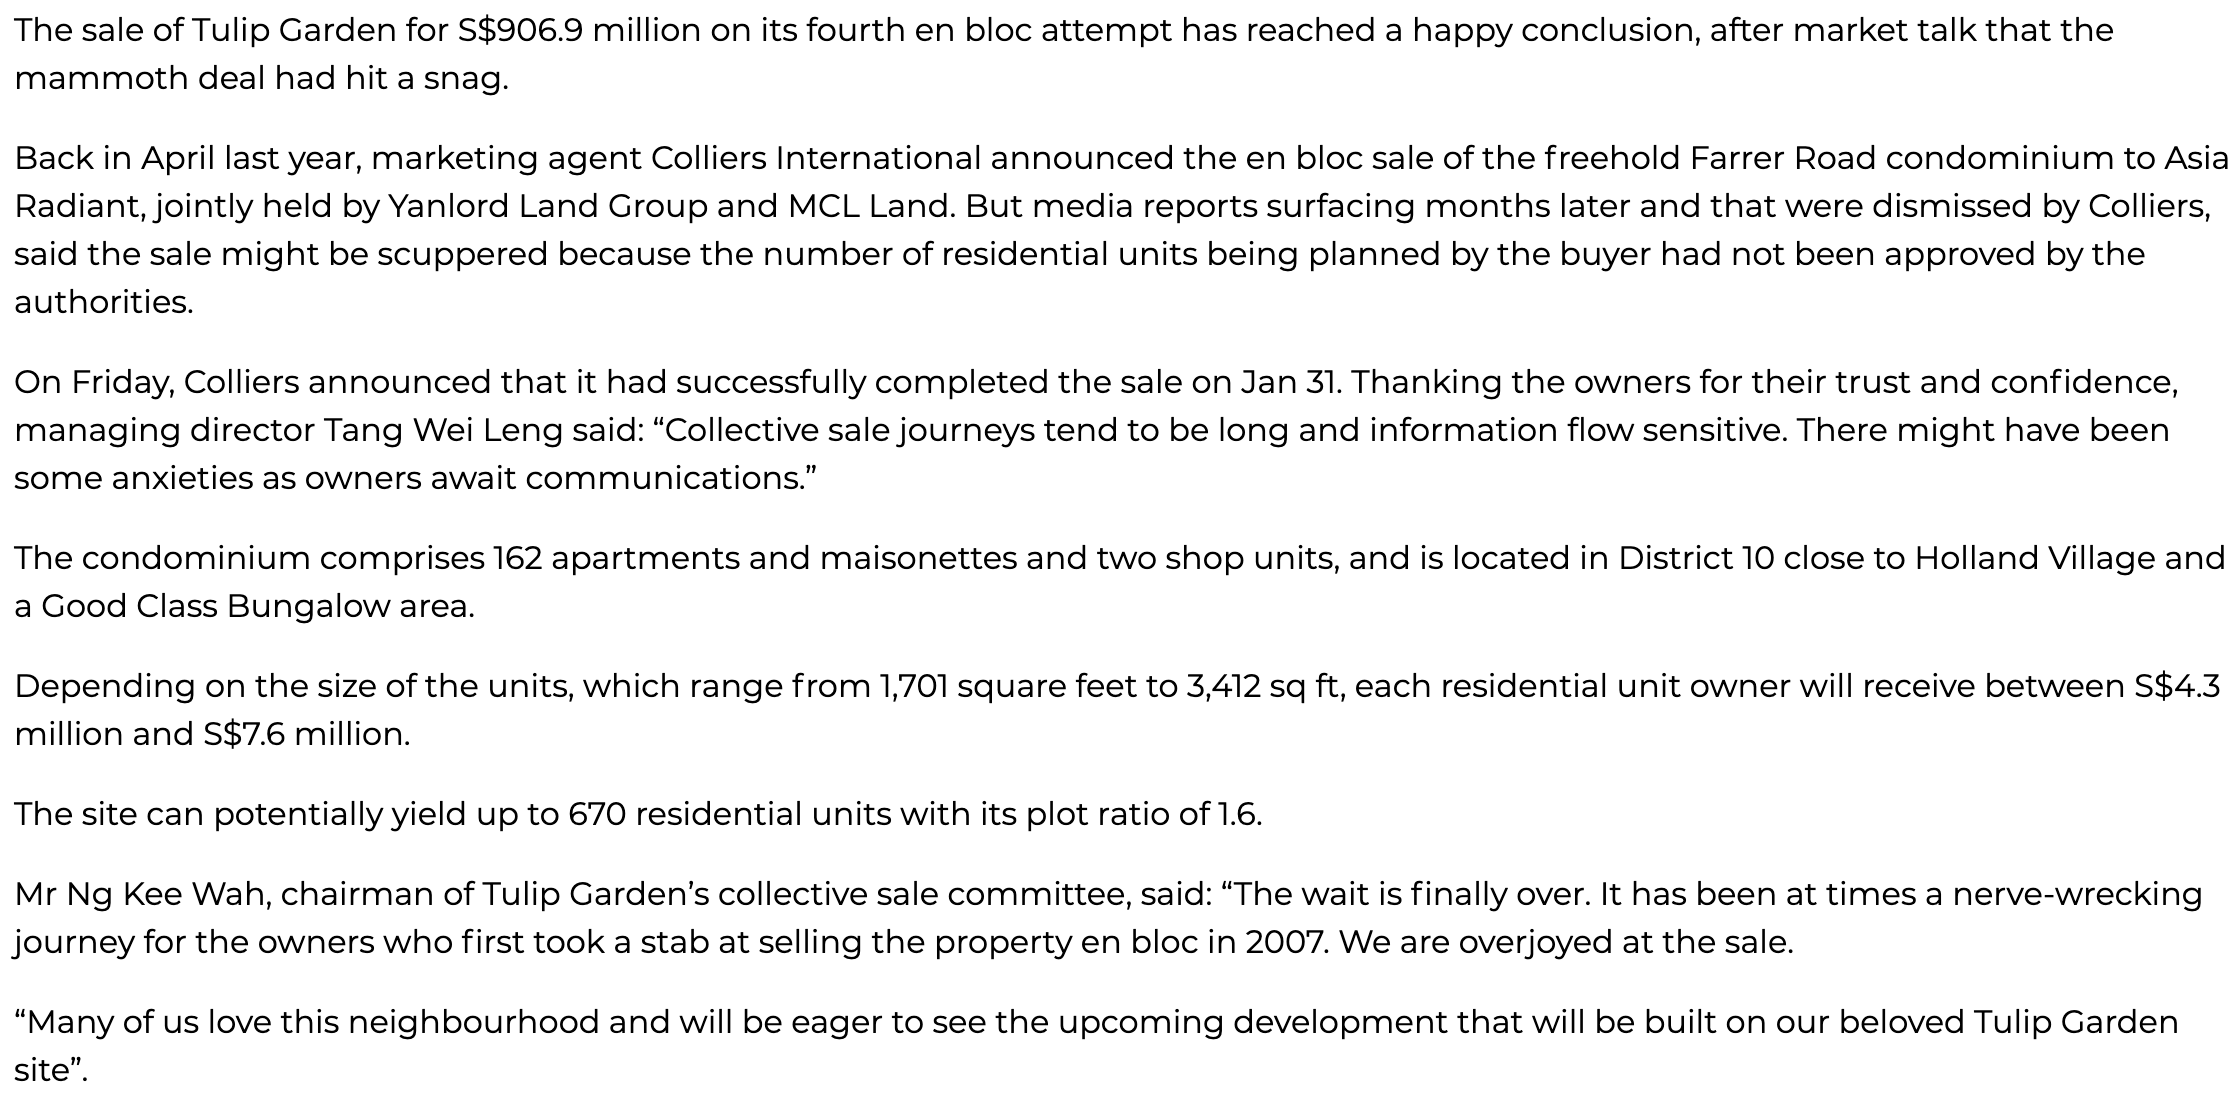 tulip-garden-S$907m-collective-sale-to-yanlord-mcl-successfully-completed